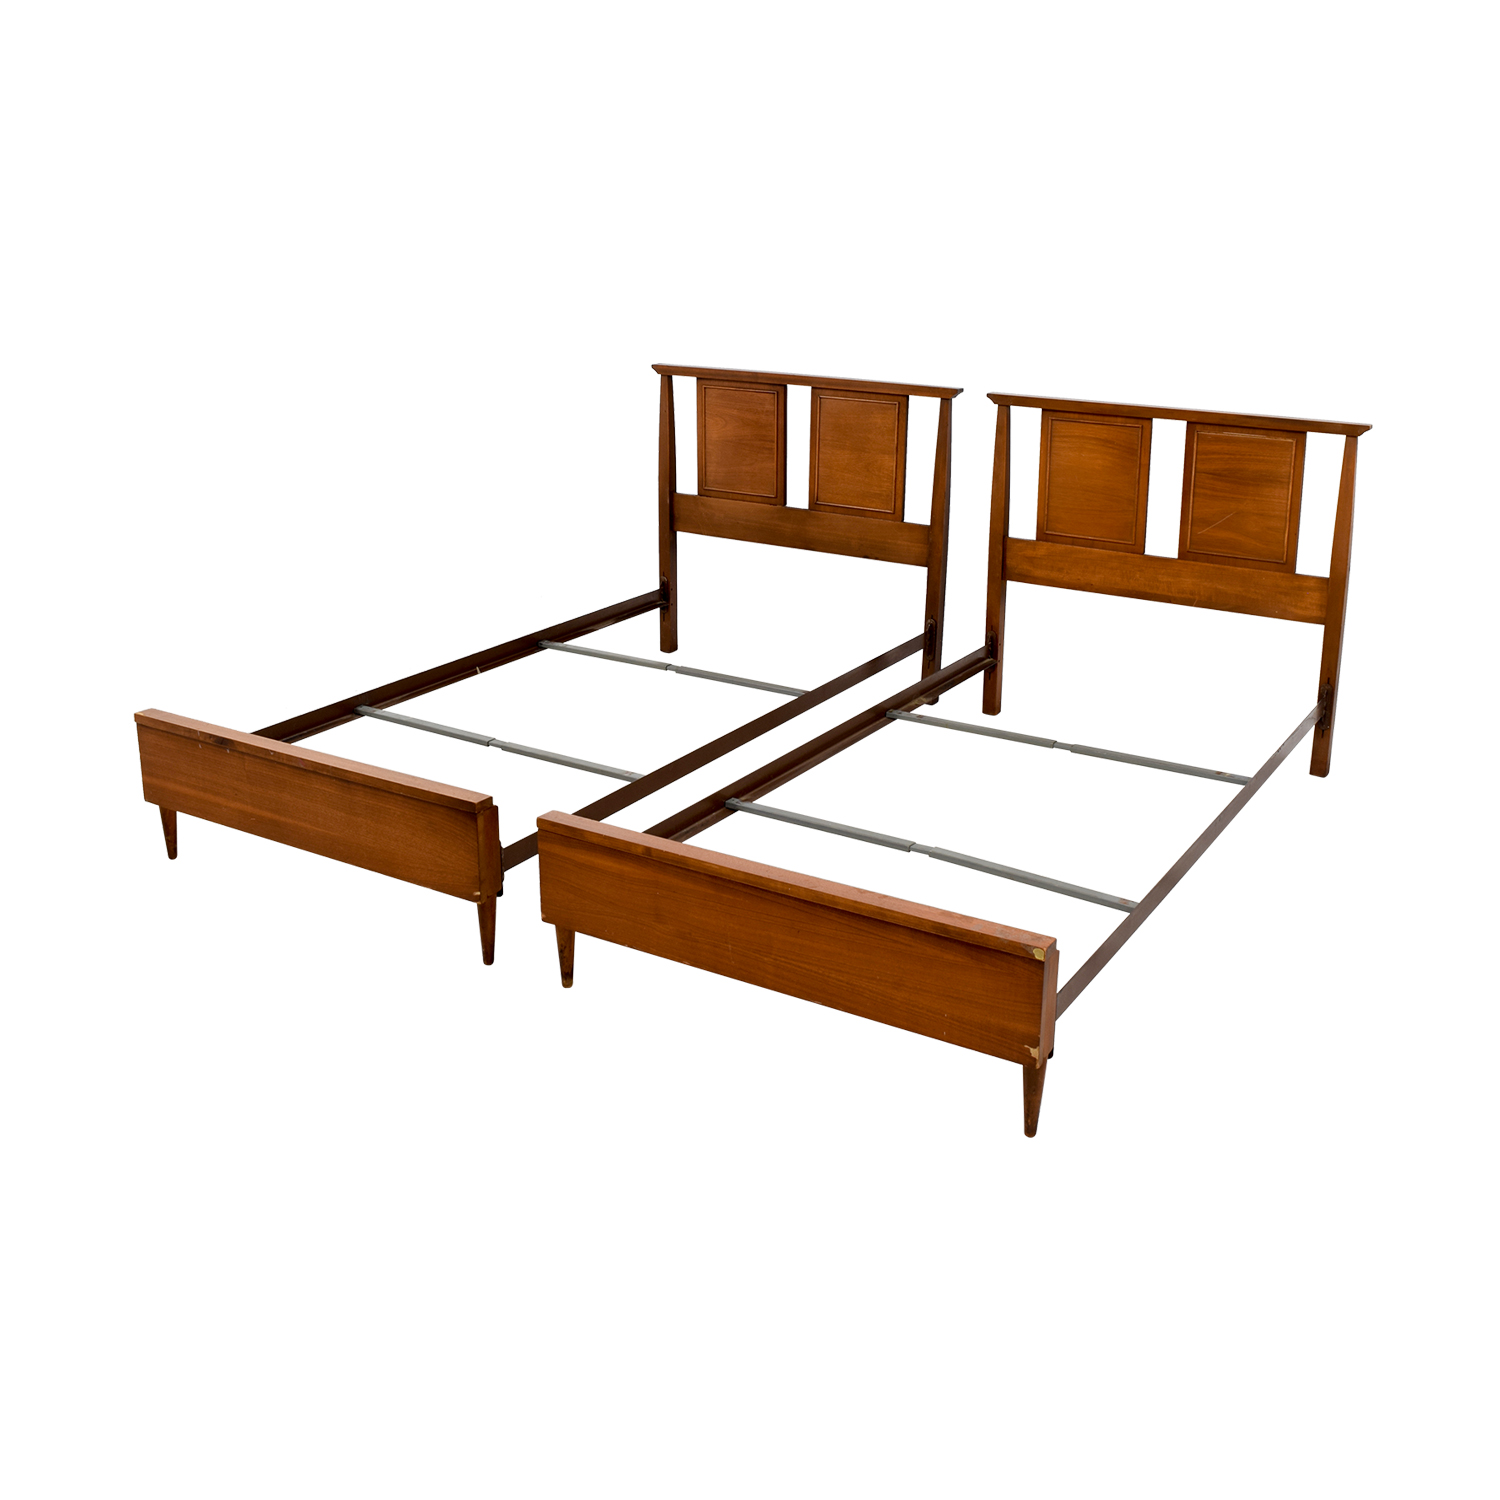 39 off seaman s seaman s twin bed frames beds Twin bed frames